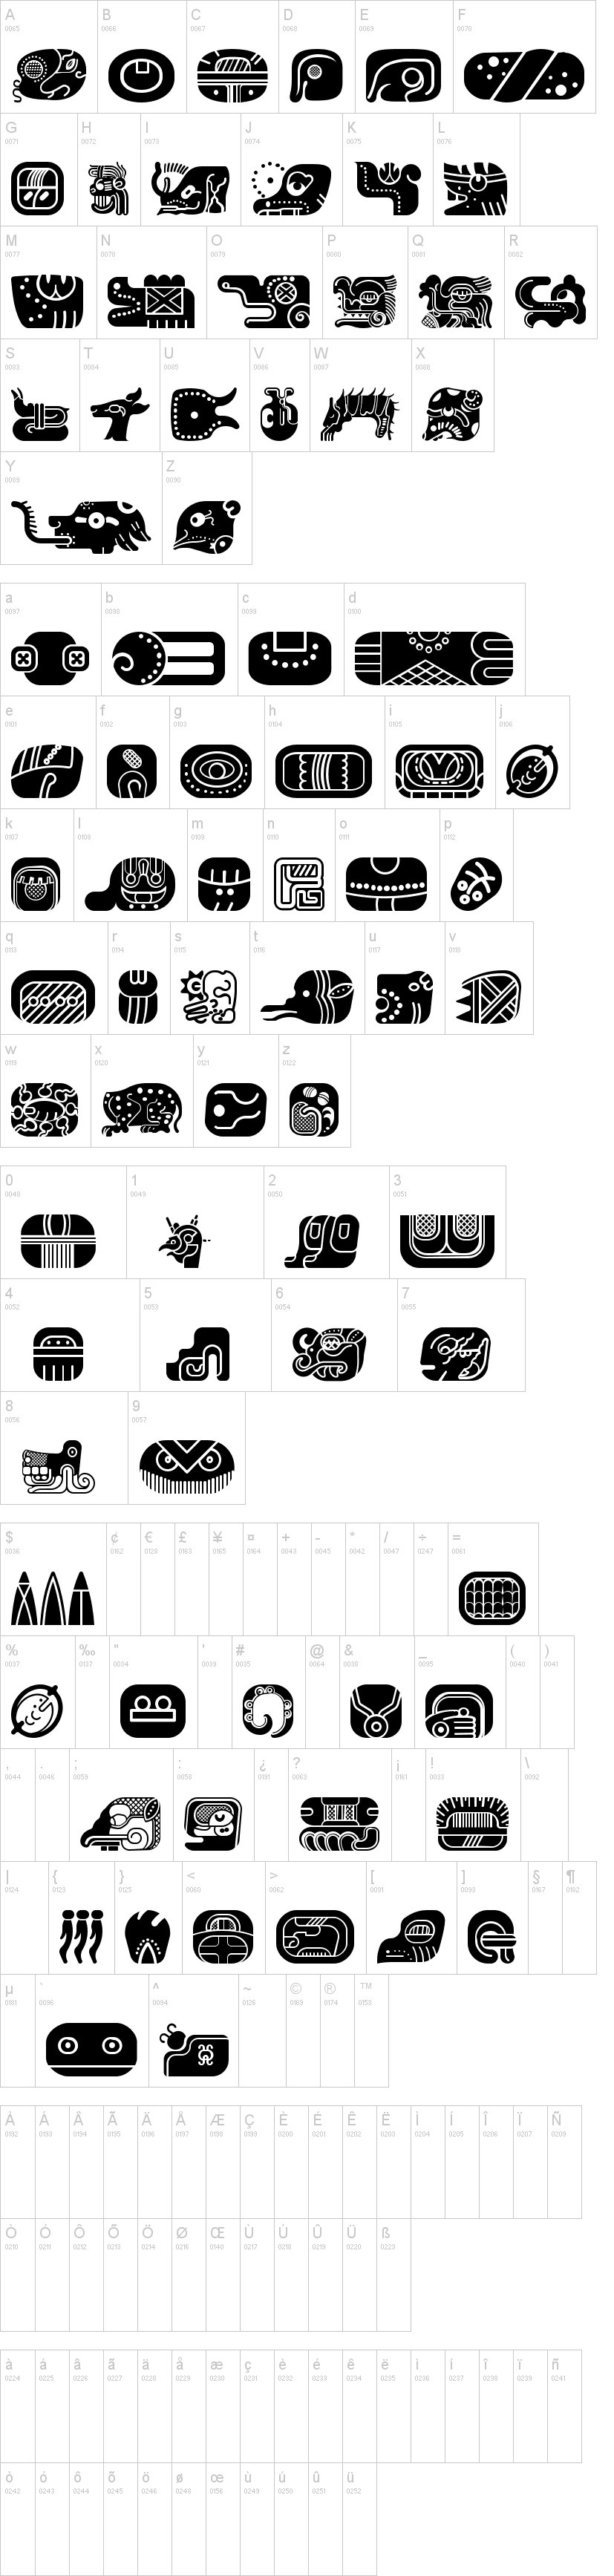 Mayan glyphs paper hand drawn patterns pinterest mayan mayan glyphs biocorpaavc